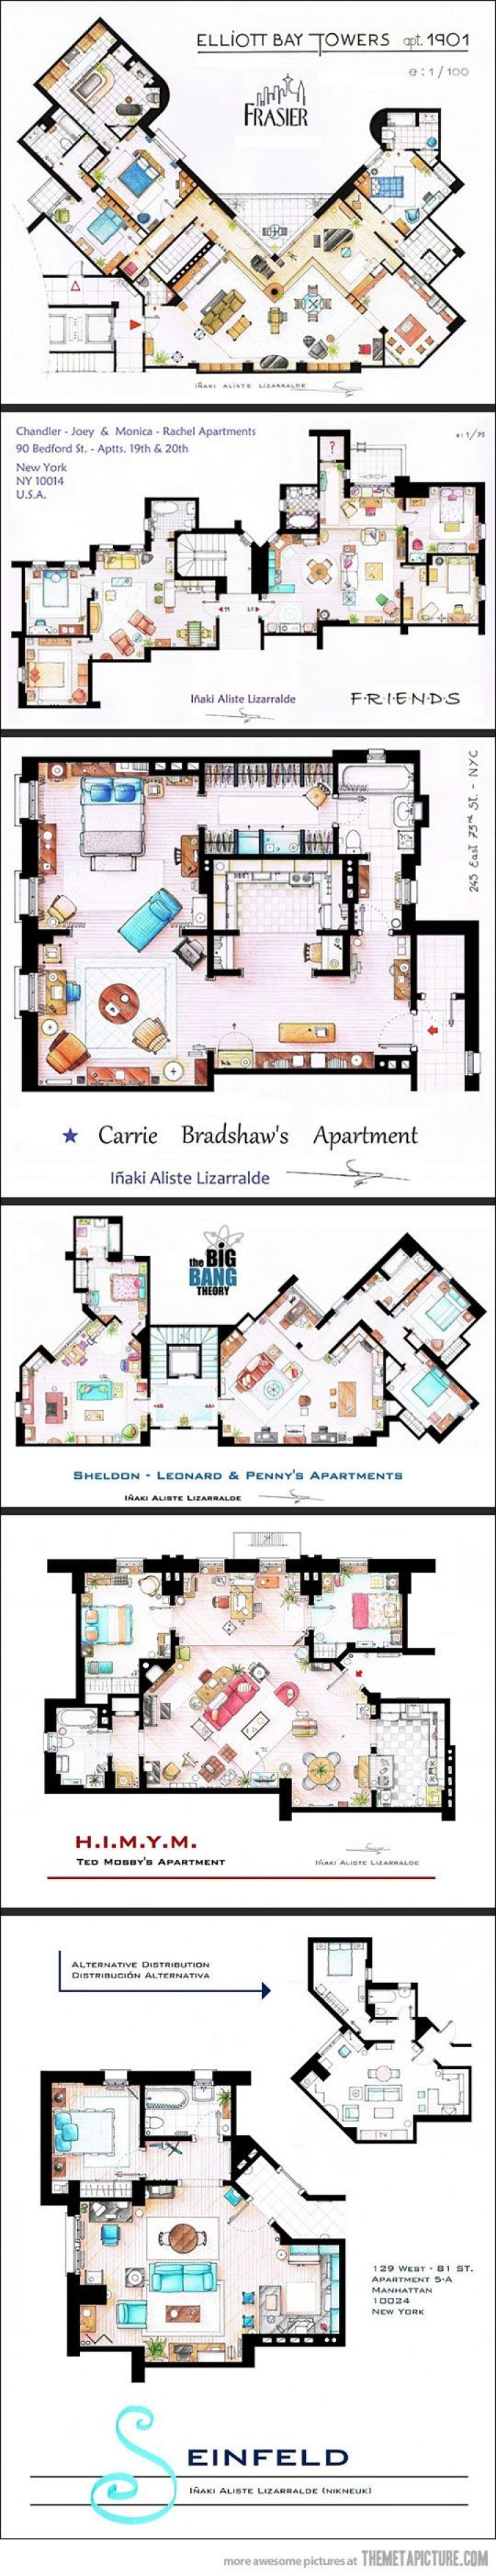 Floor Plans From Tv Series Frasier F R I E N D S Sex And The City The